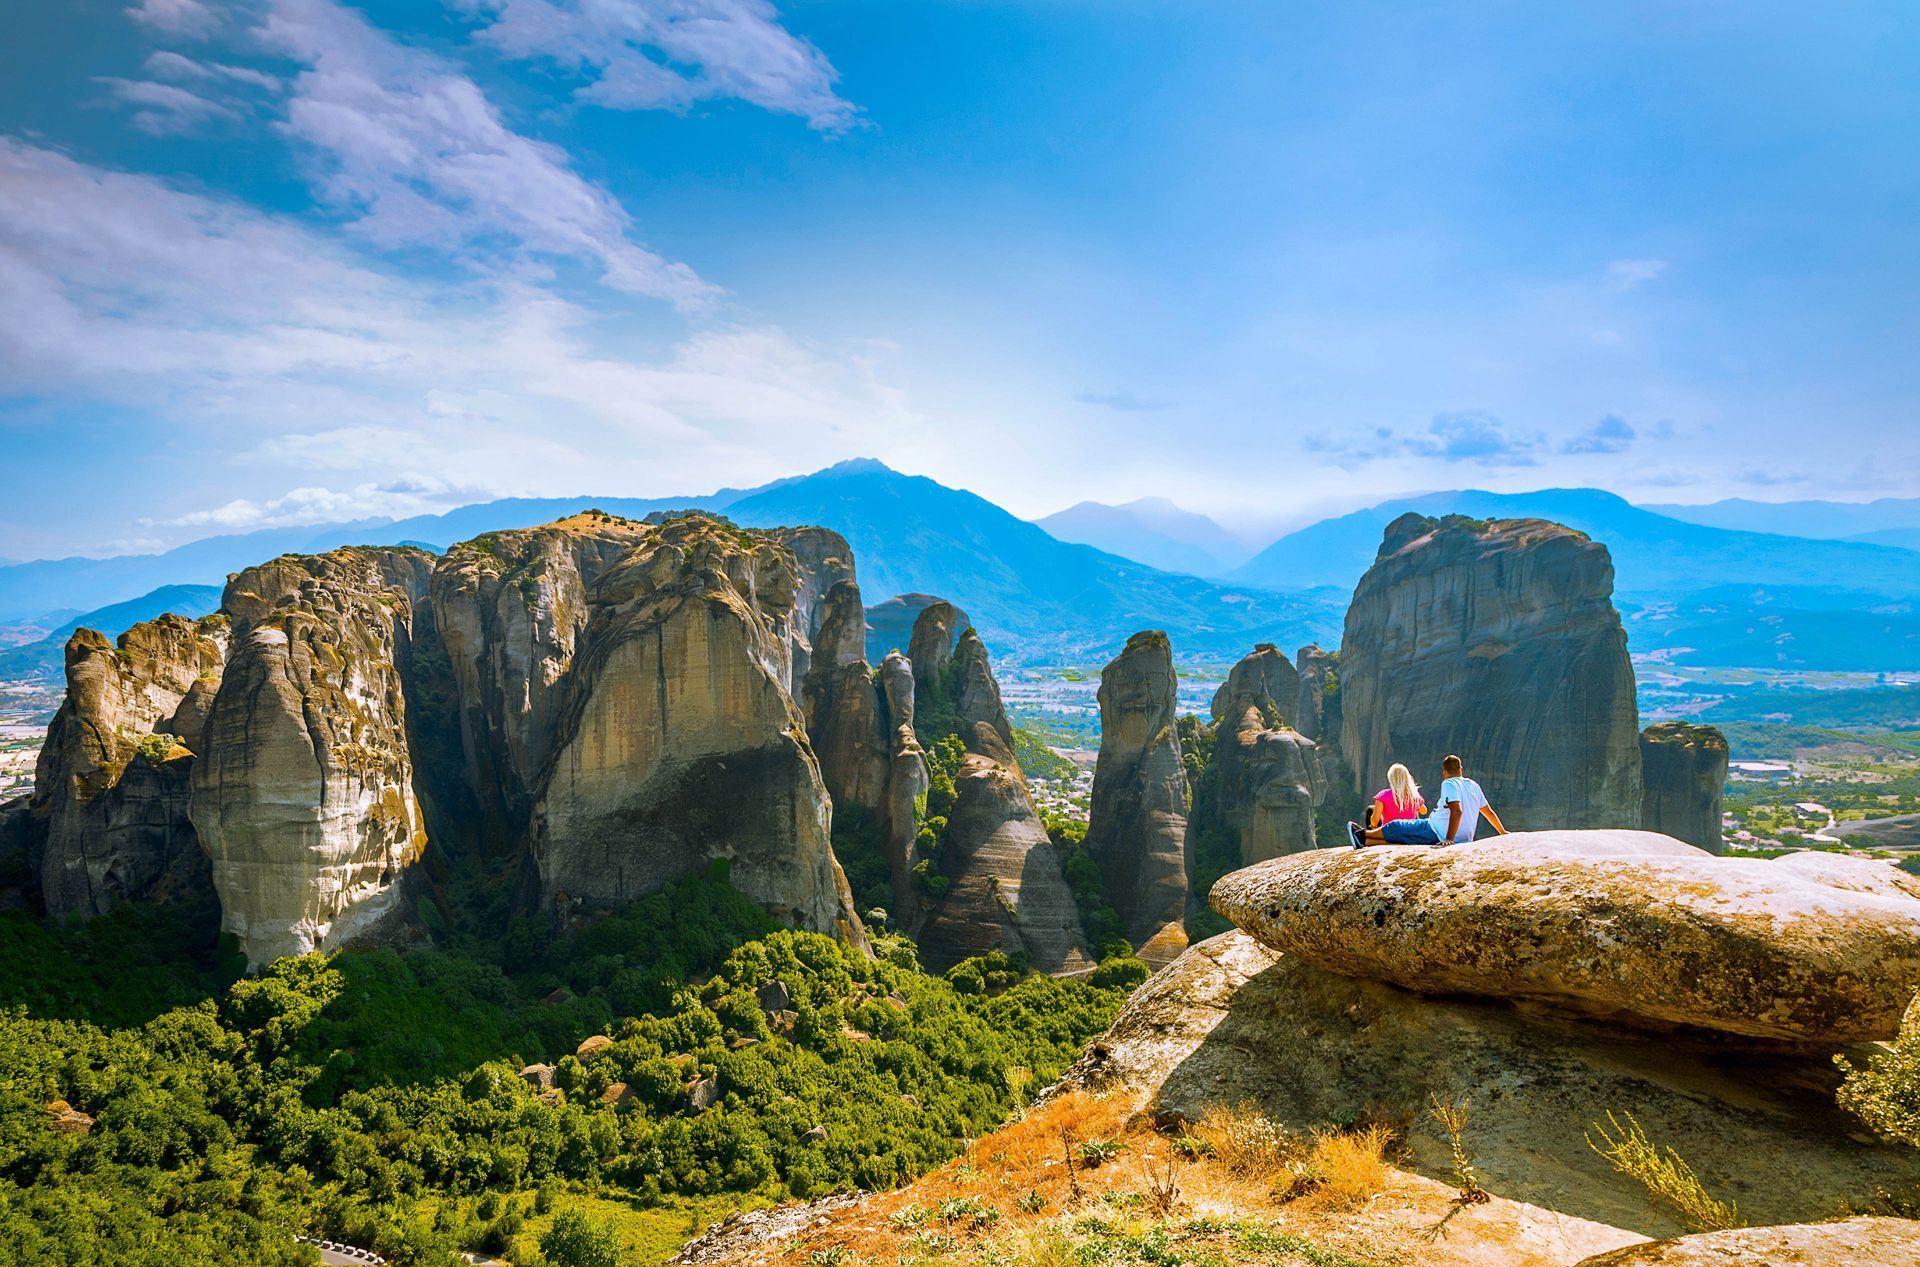 Thessaly Greece: The rock formations of Meteora